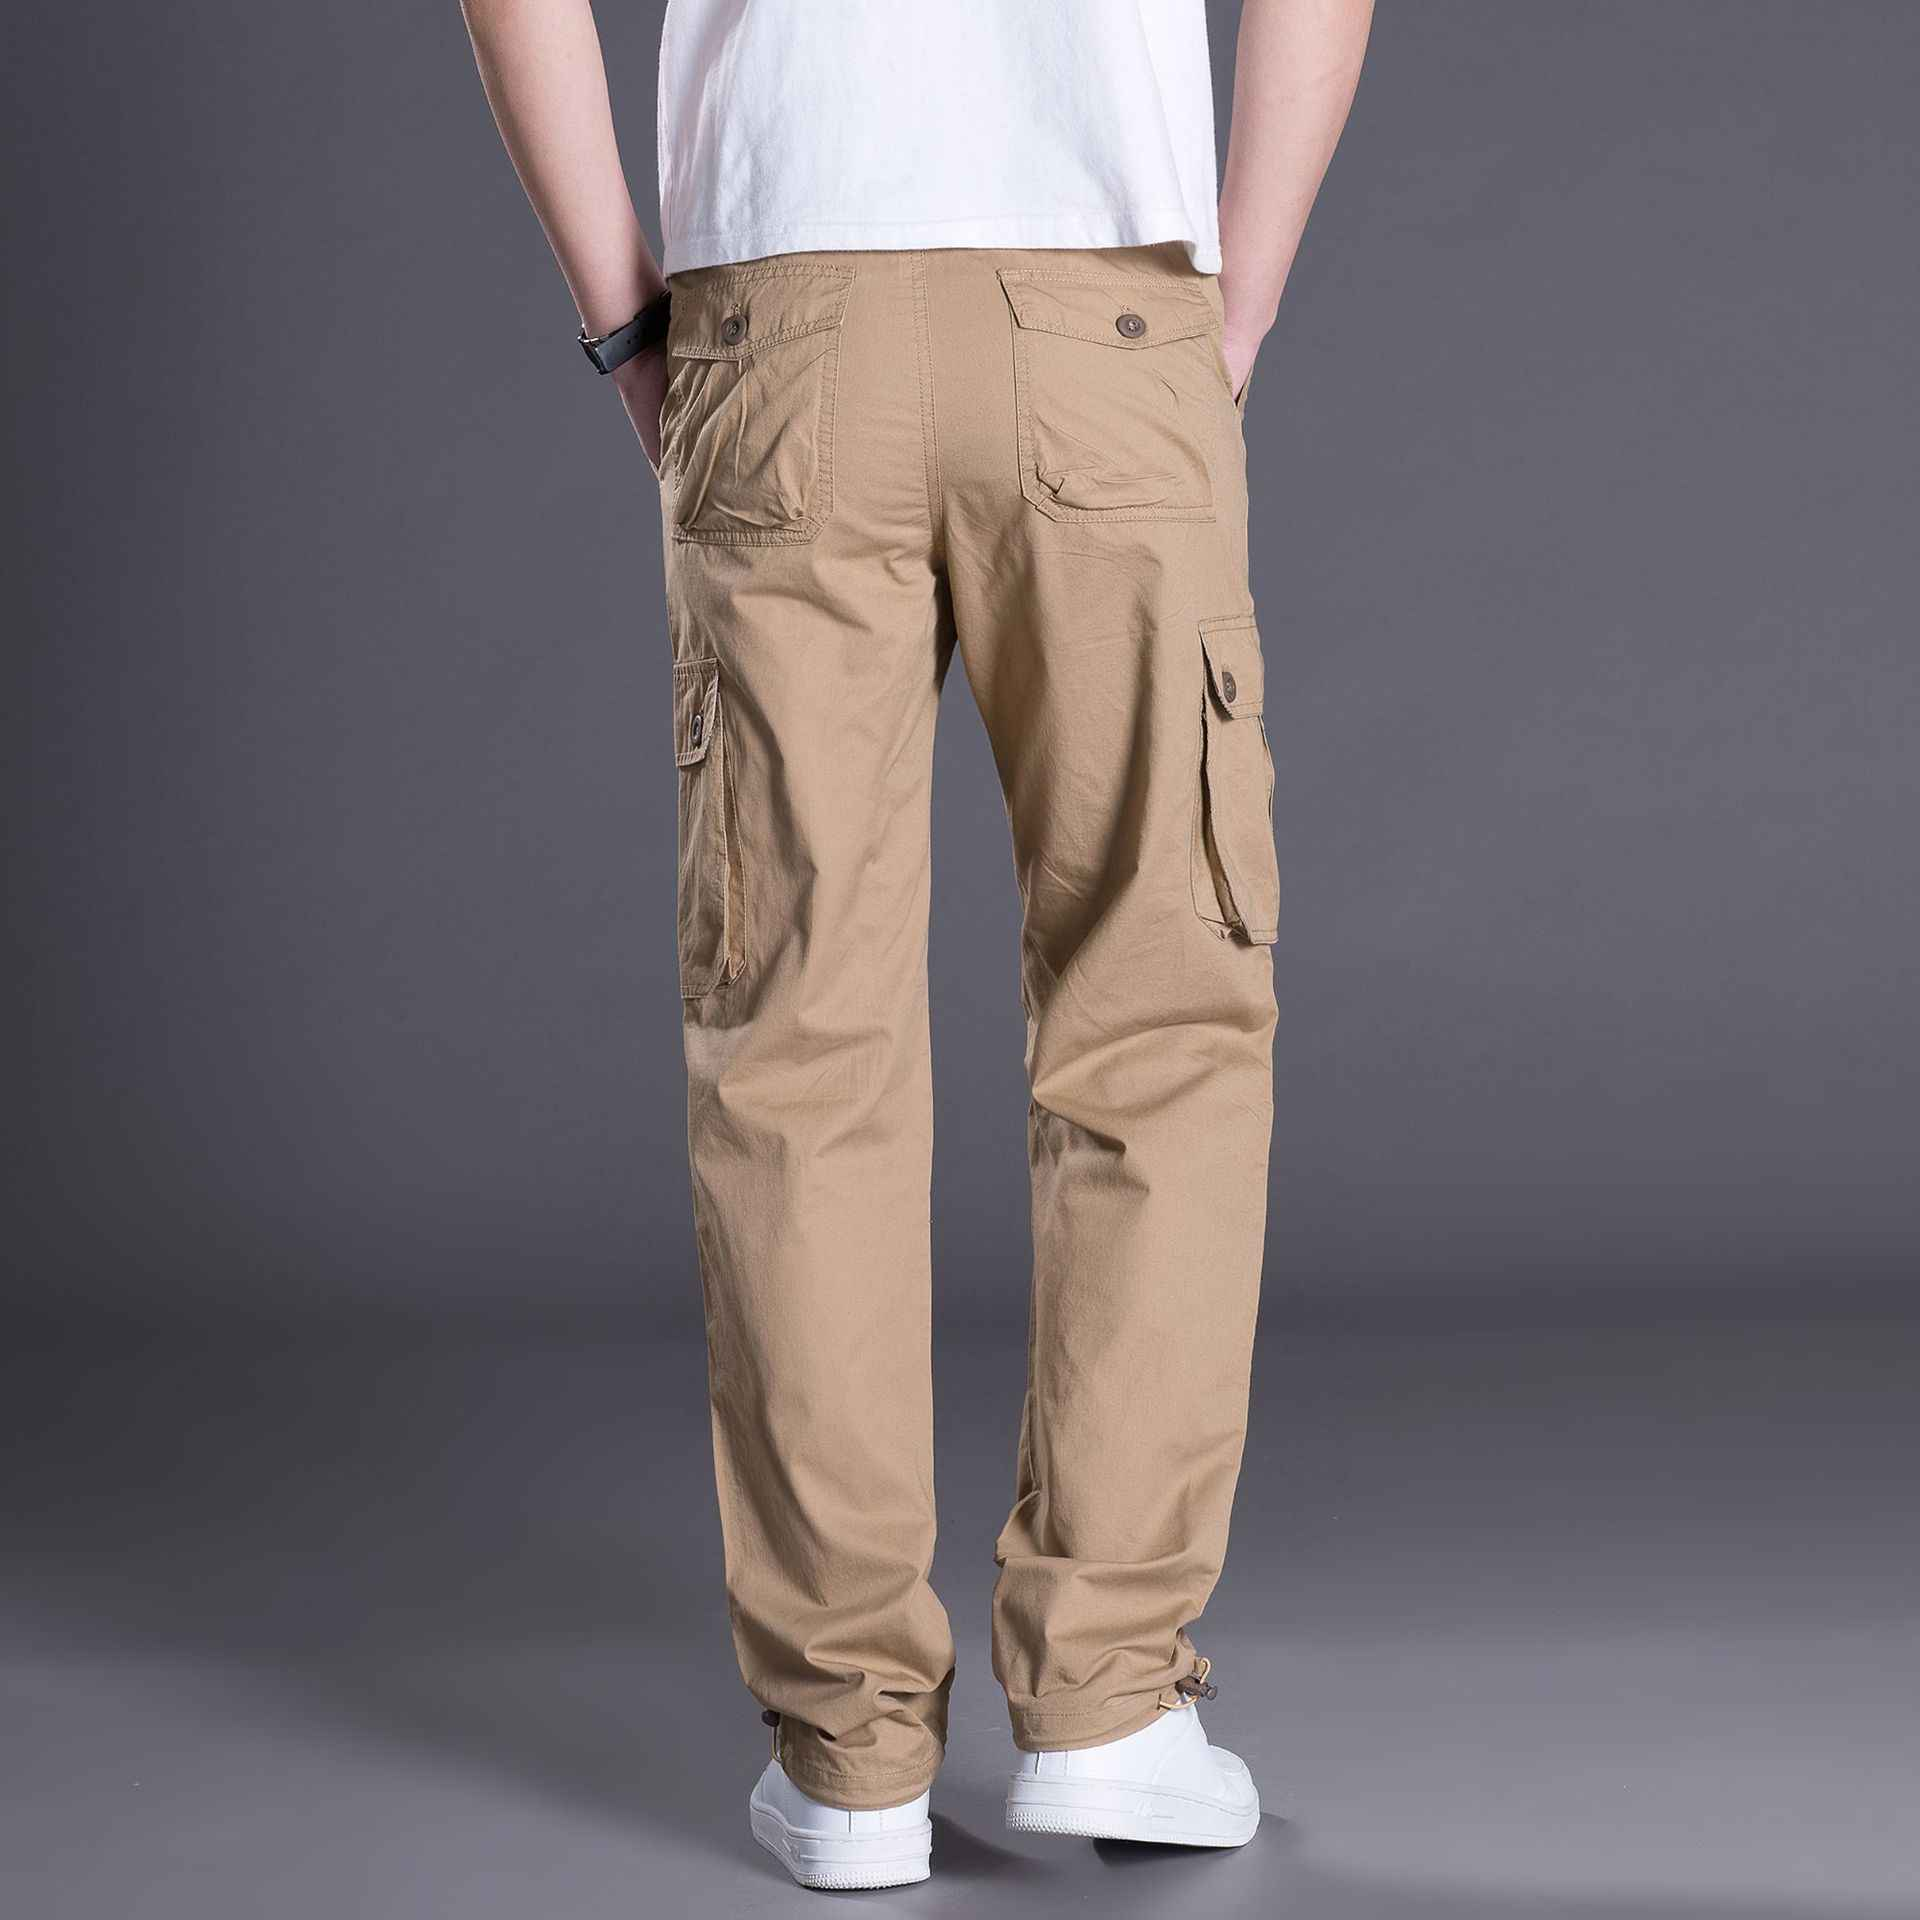 768cd4b930 ... Mens Cargo Pants Male Tactical Pants Military Army Style Mens Casual  Jogger Camo Multi Pocket Baggy ...